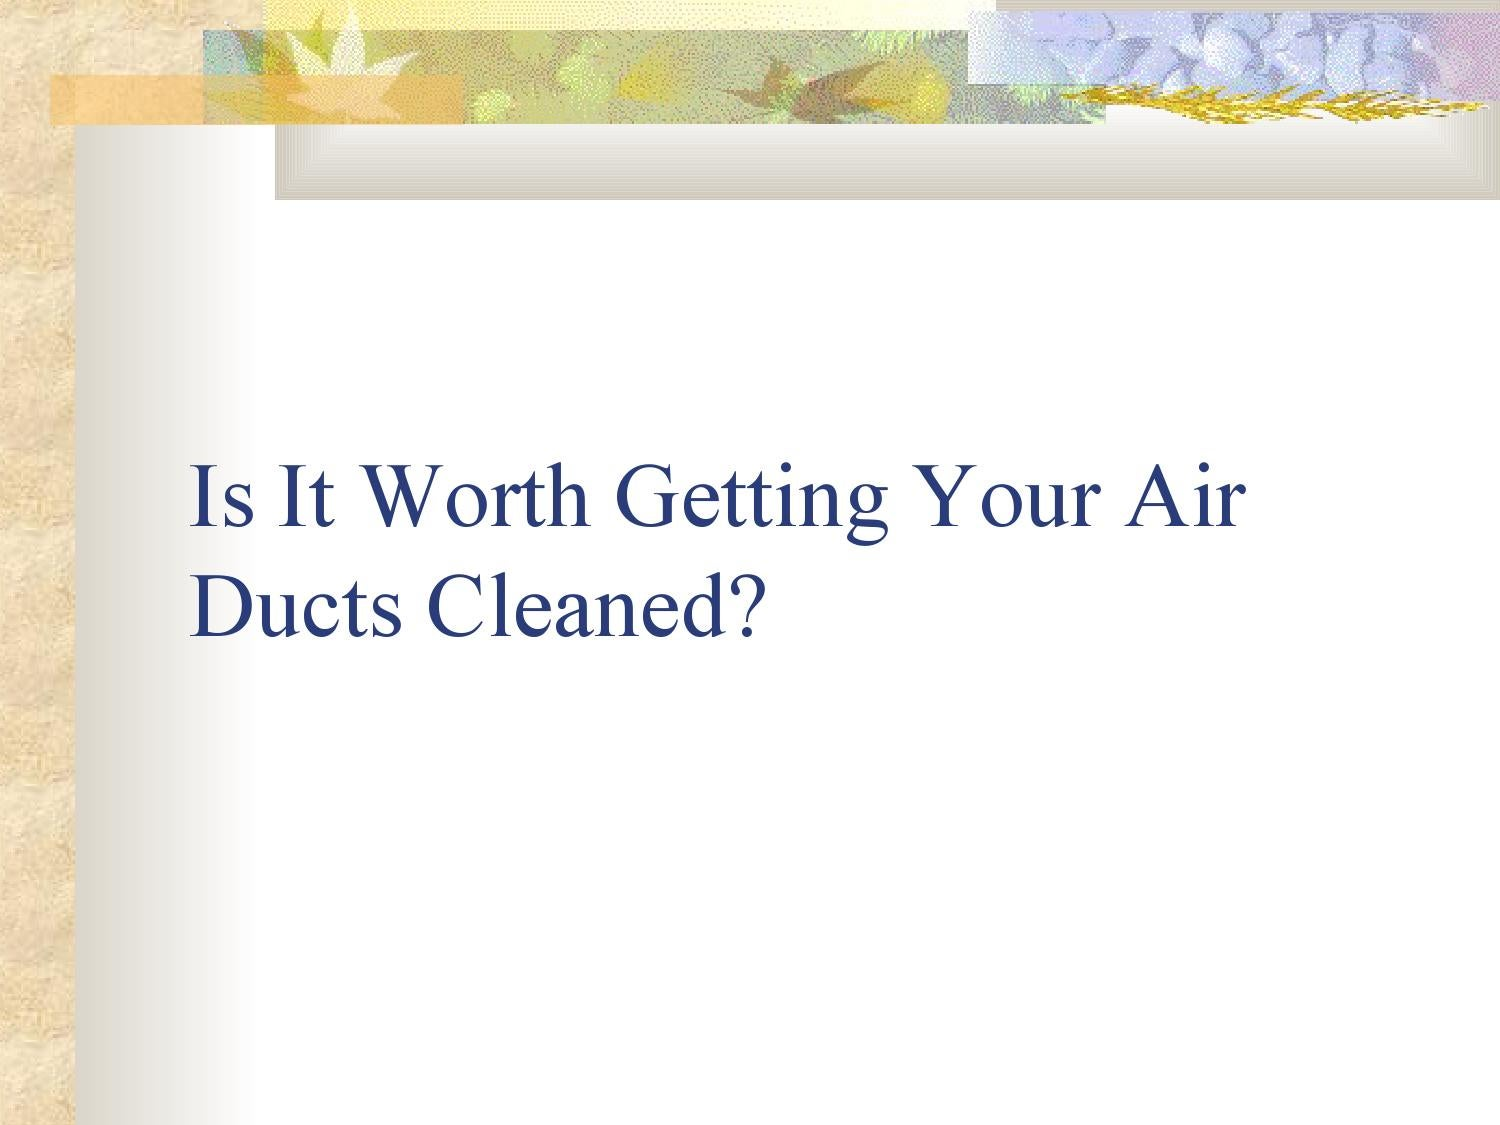 #A68F25 Is It Worth Getting Your Air Ducts Cleaned By Kevin Allen  Most Effective 3175 Getting Ducts Cleaned pictures with 1500x1125 px on helpvideos.info - Air Conditioners, Air Coolers and more